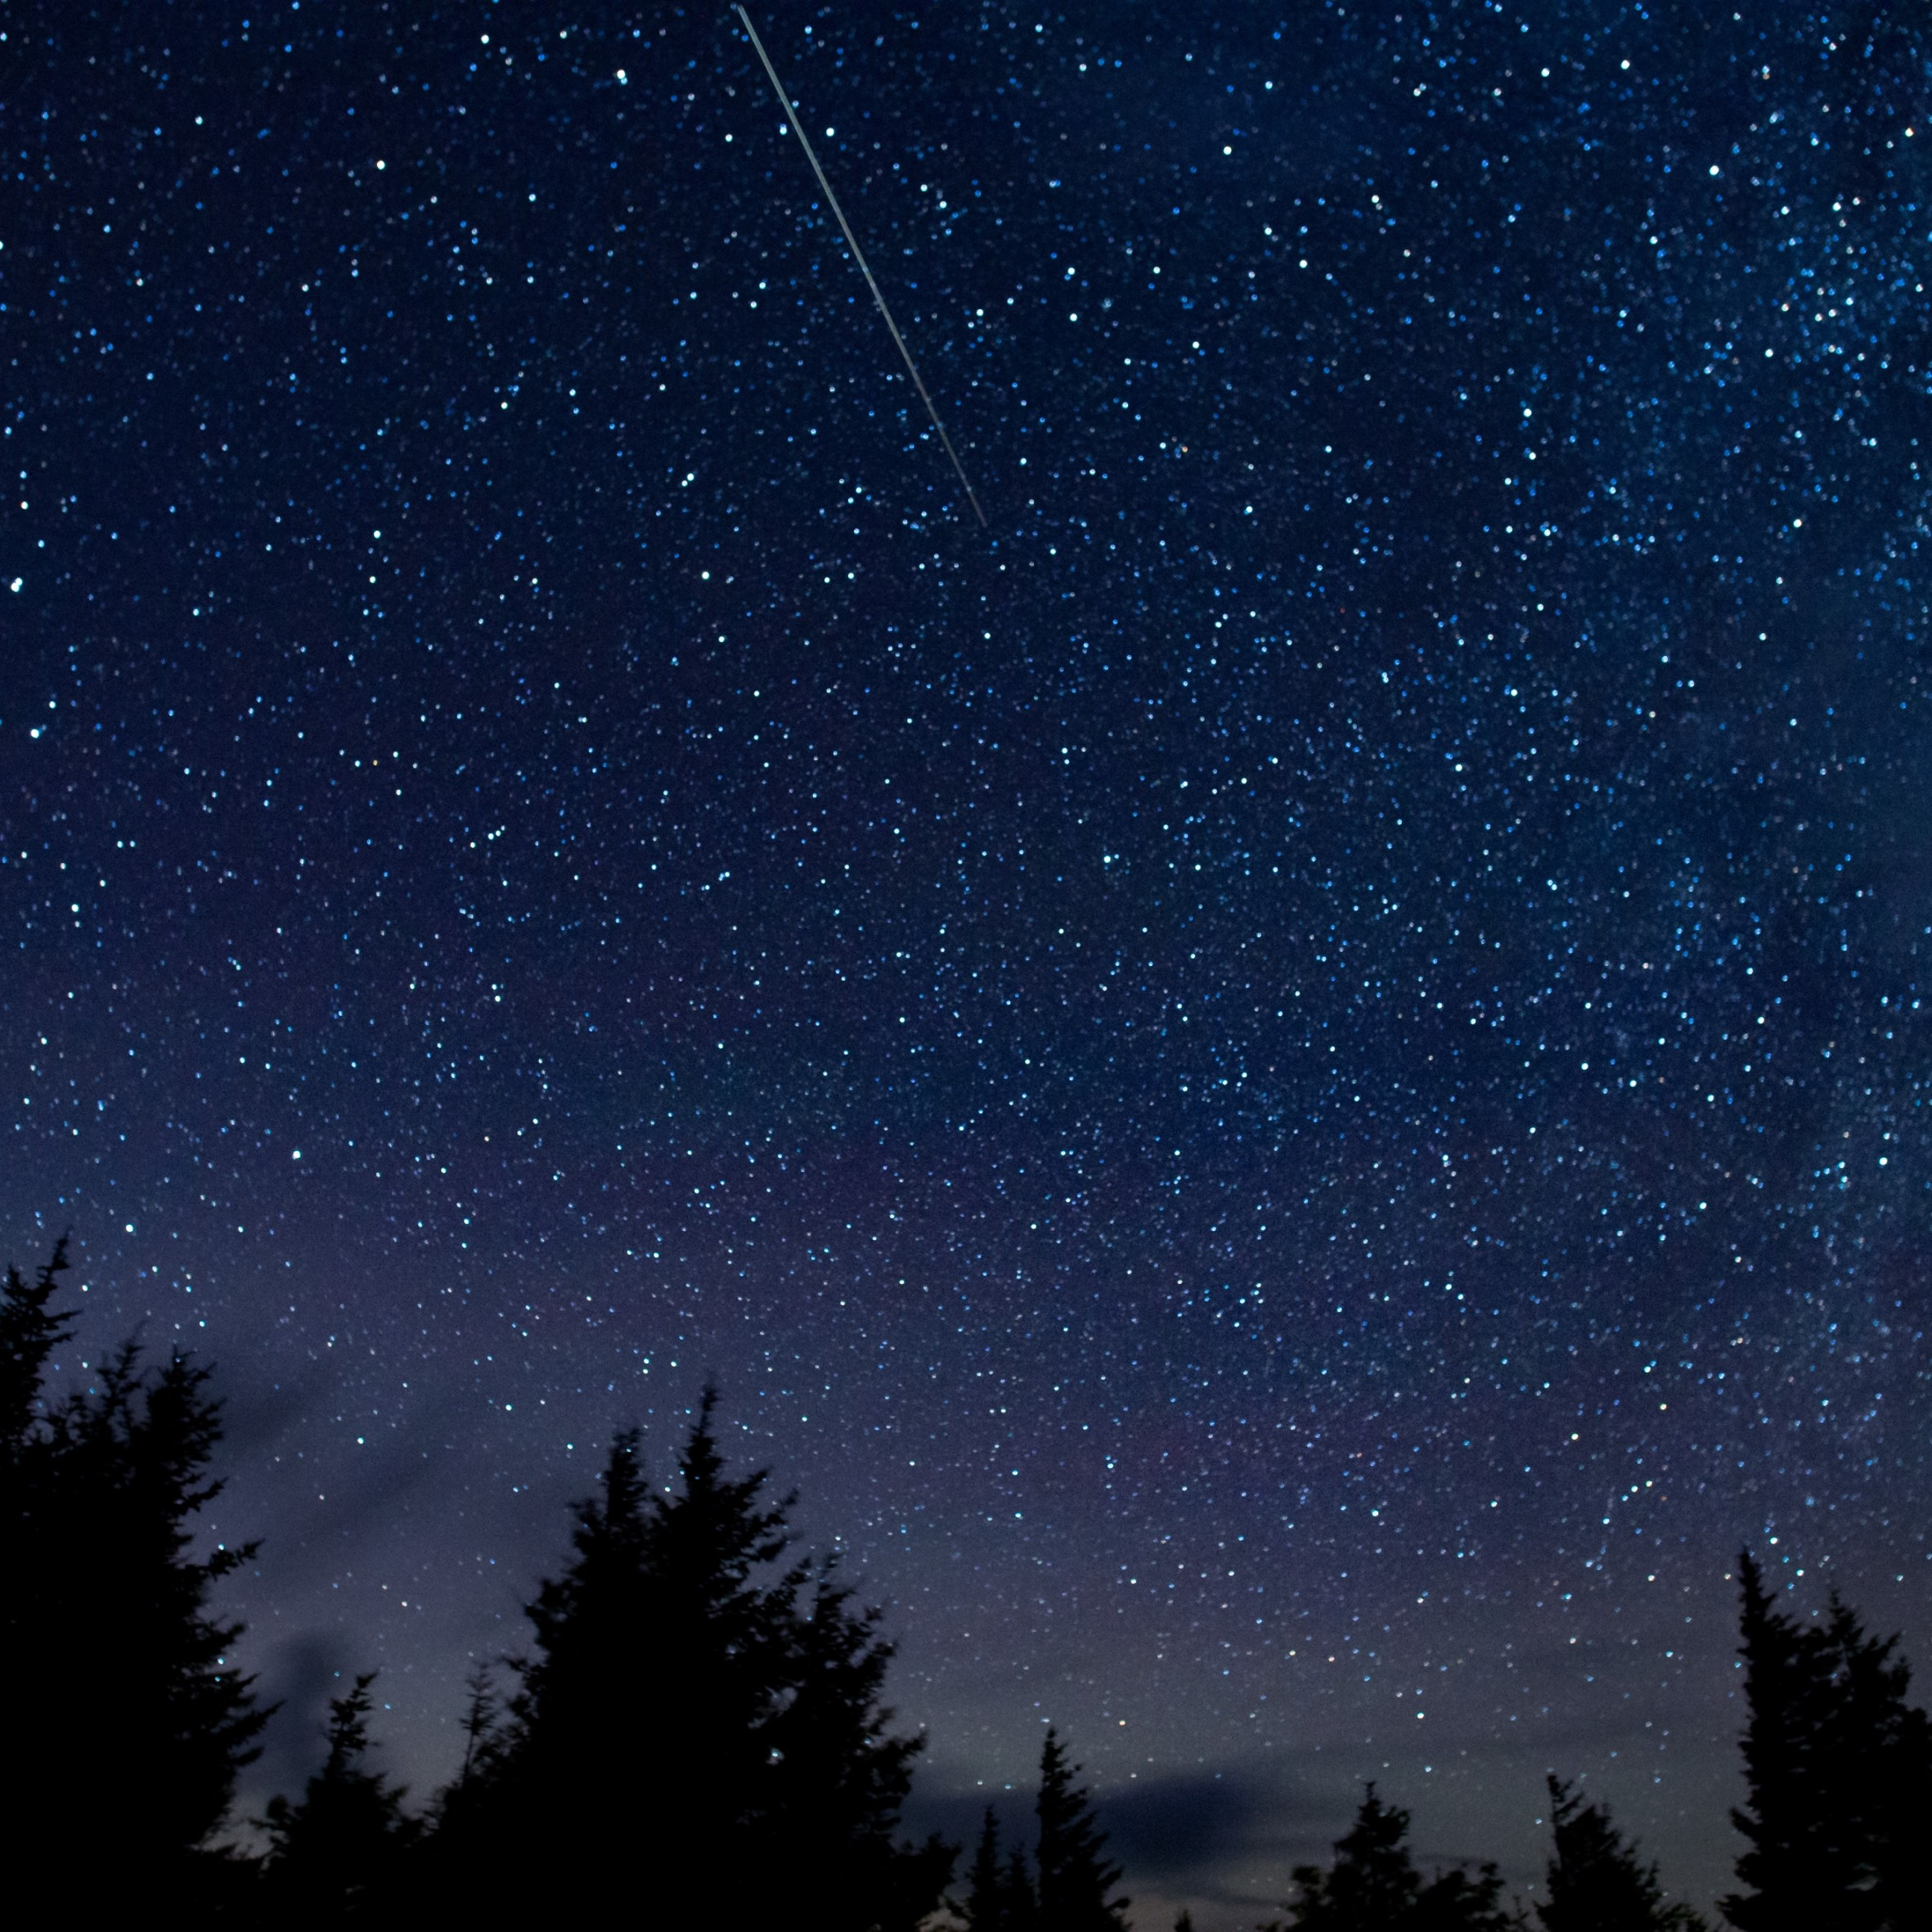 In this 30-second exposure, a meteor streaks across the sky during the annual Perseid meteor shower Thursday, Aug. 13, 2015, in Spruce Knob, West Virginia. (NASA/Bill Ingalls photo)